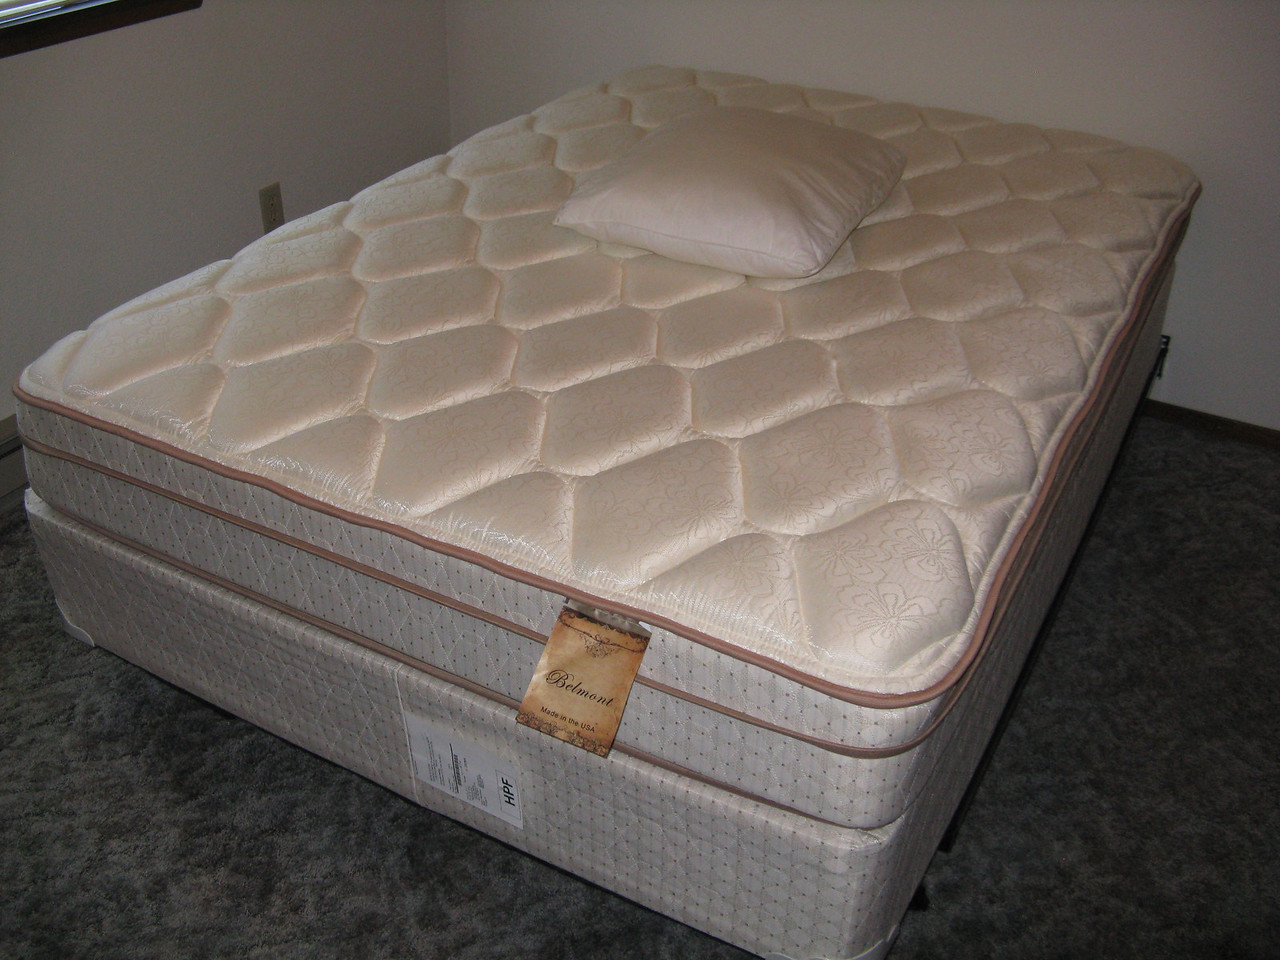 Kevin bought a new bed.